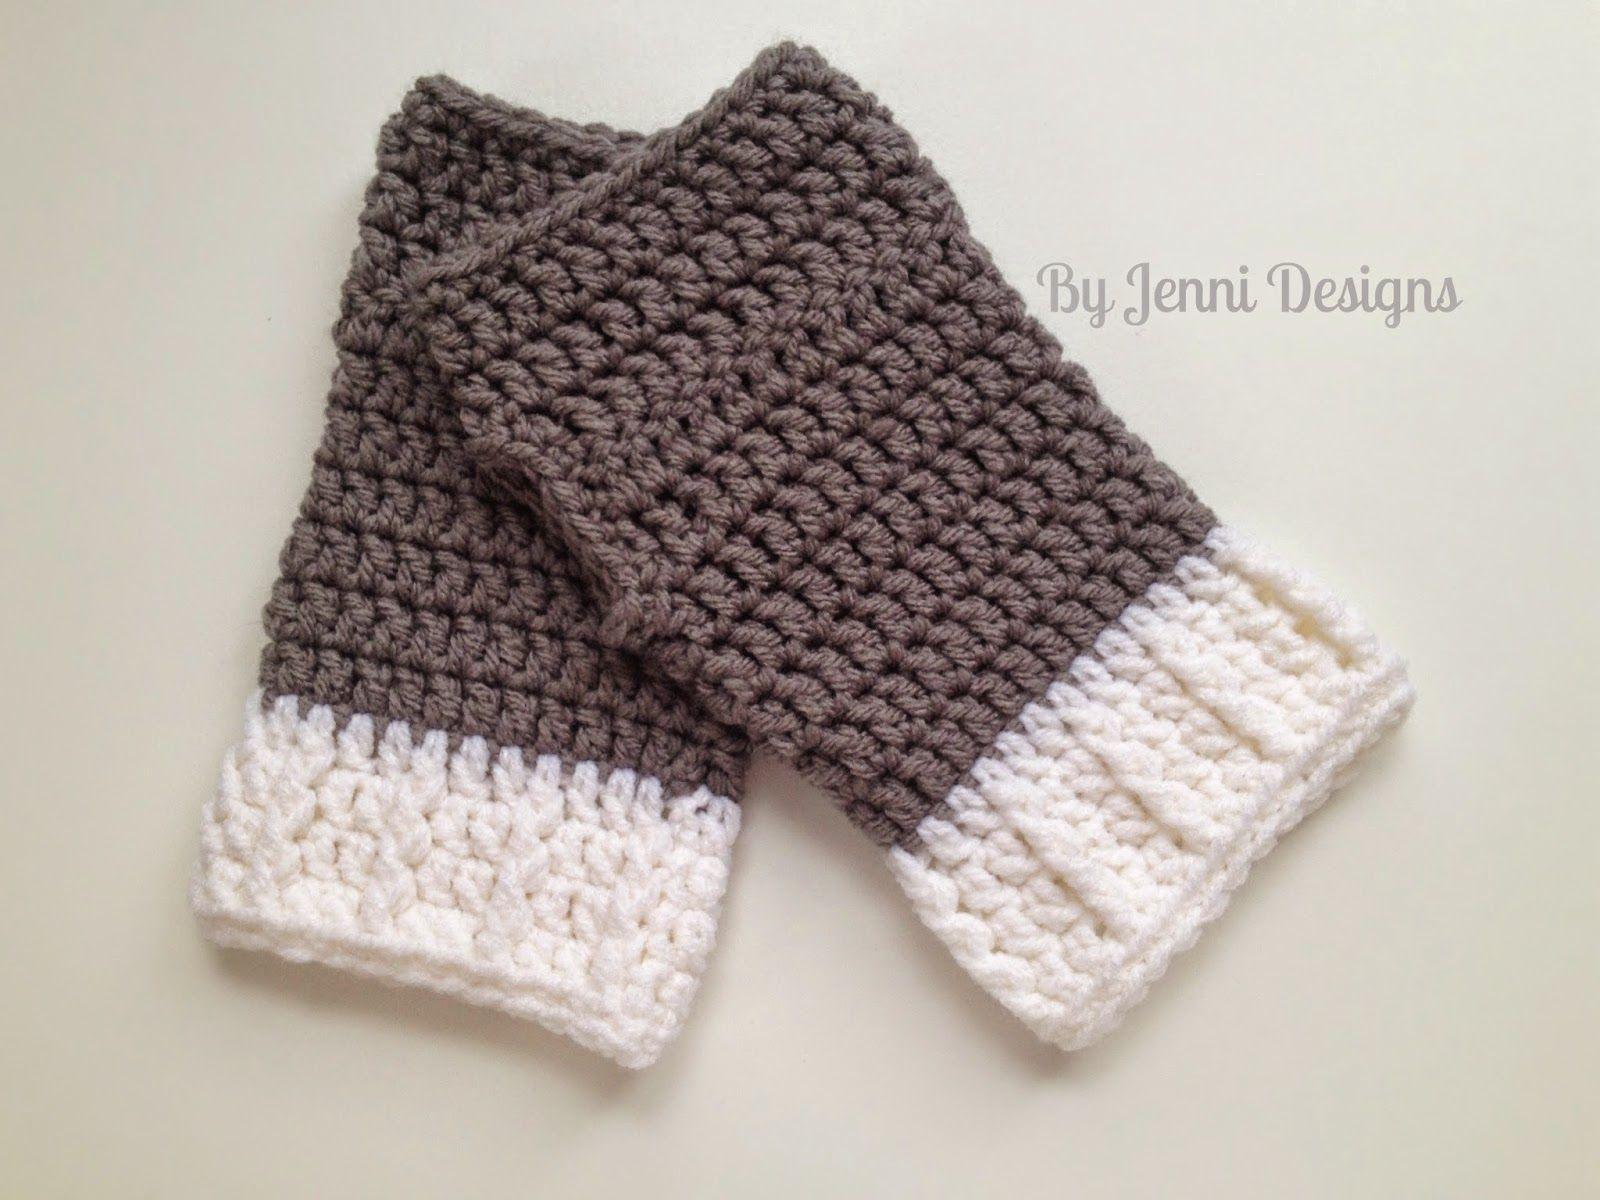 Knitting fingerless gloves in the round - By Jenni Designs Ribbed Cuff Fingerless Gloves Pattern